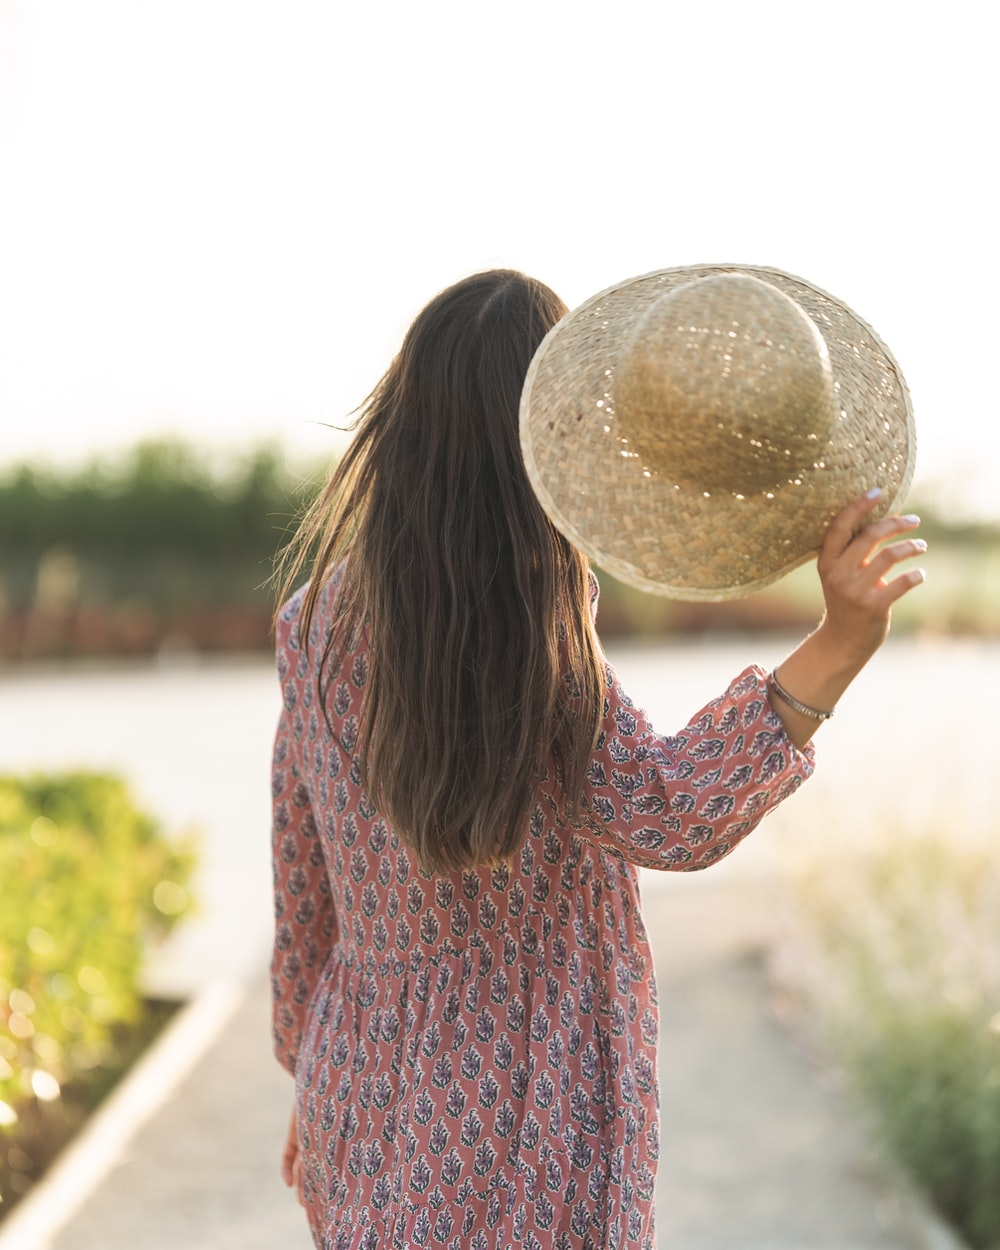 woman in red and blue long sleeve shirt holding white ball during daytime